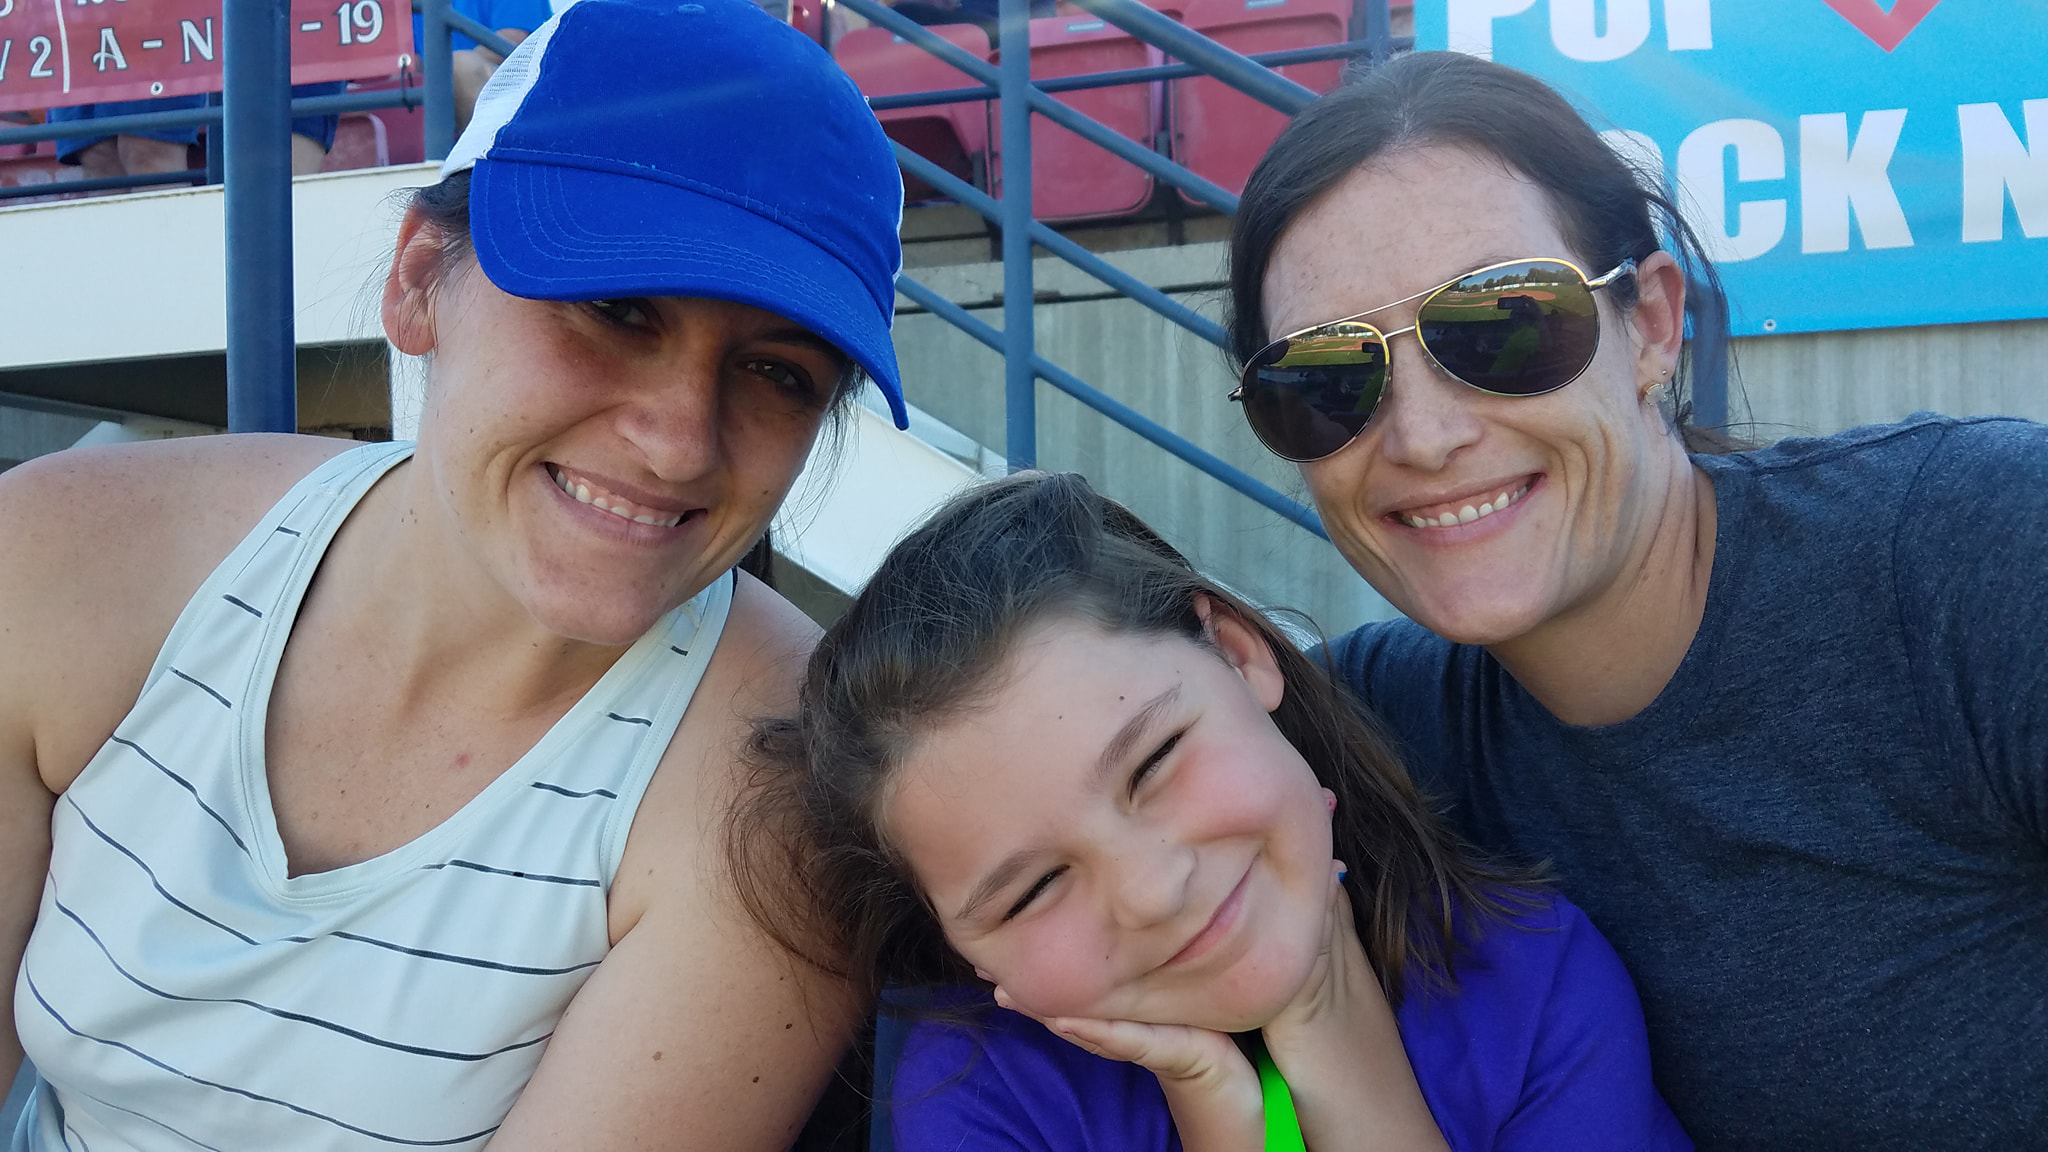 Fans at the Boise Hawks